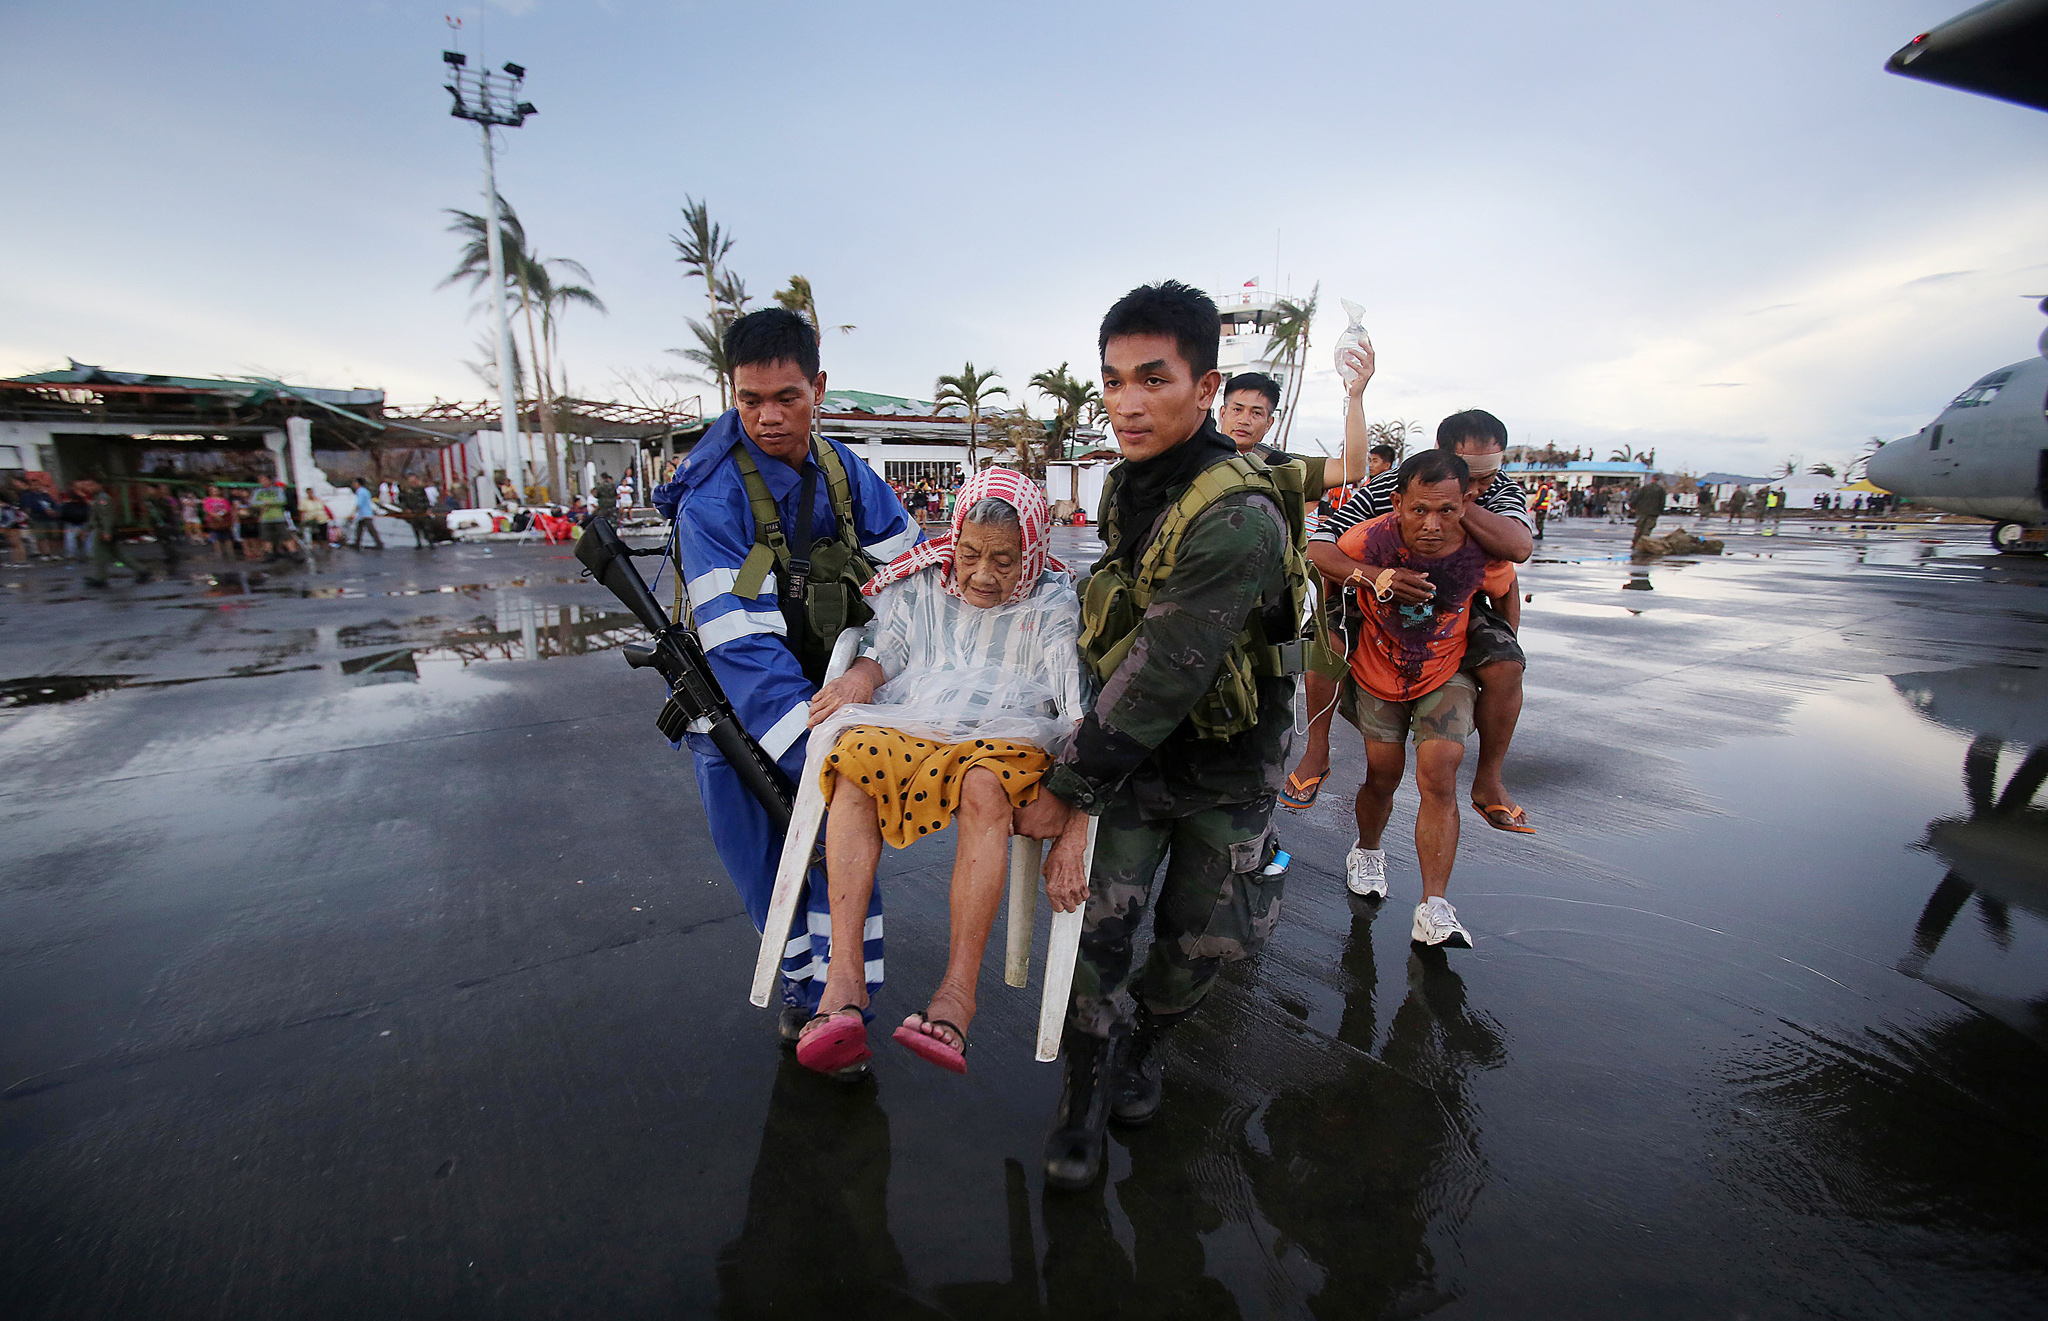 Survivors of Typhoon Haiyan are evacuated by rescue workers from the airport in Tacloban city, Leyte province, central Philippines, Tuesday, Nov. 12, 2013. Four days after Typhoon Haiyan struck the eastern Philippines, assistance is only just beginning to arrive.